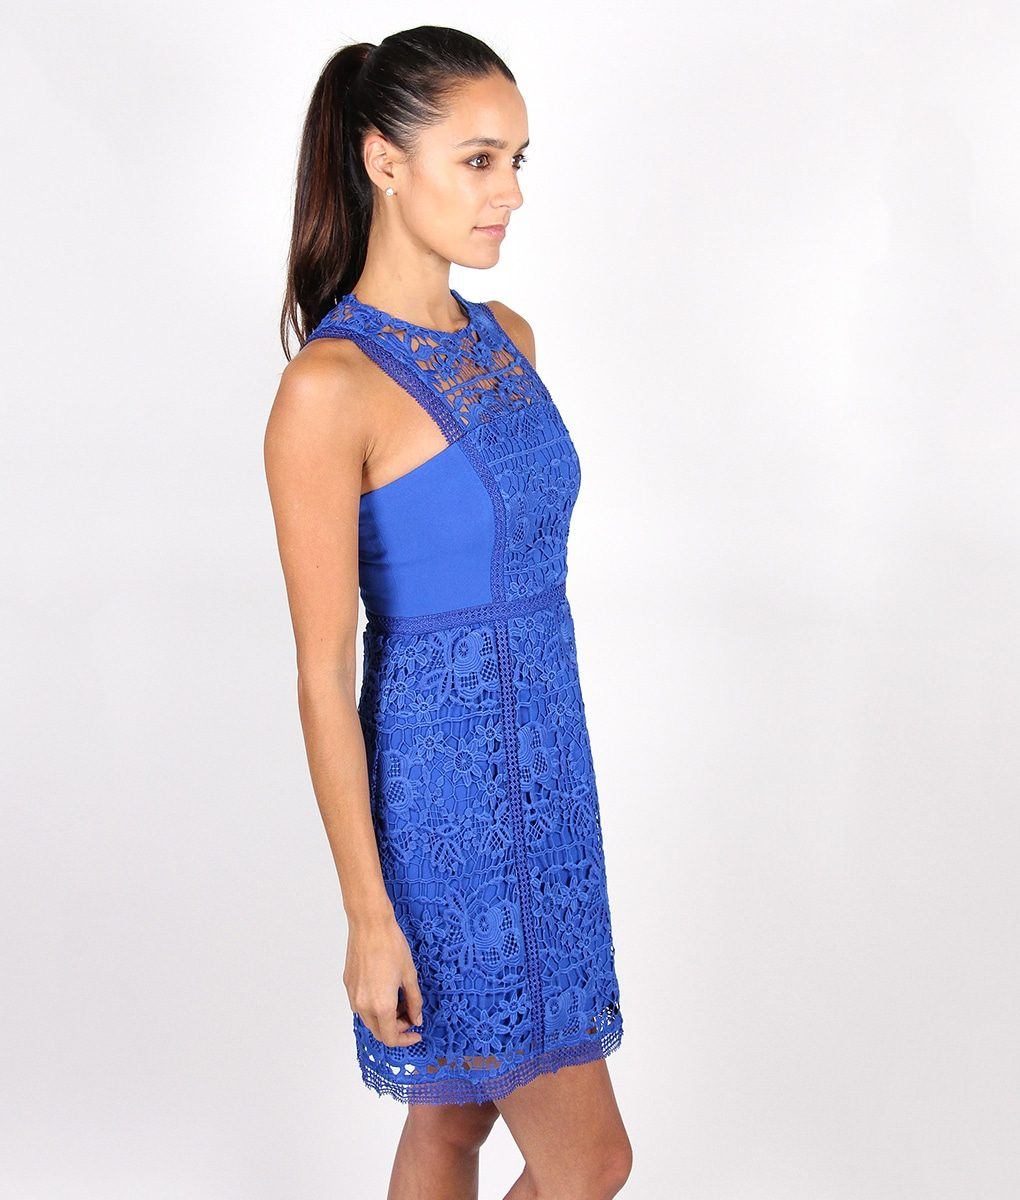 Alila-Sapphire-Blue-Lace-Dress-for-wedding-by-Lumier-by-Bariano-side